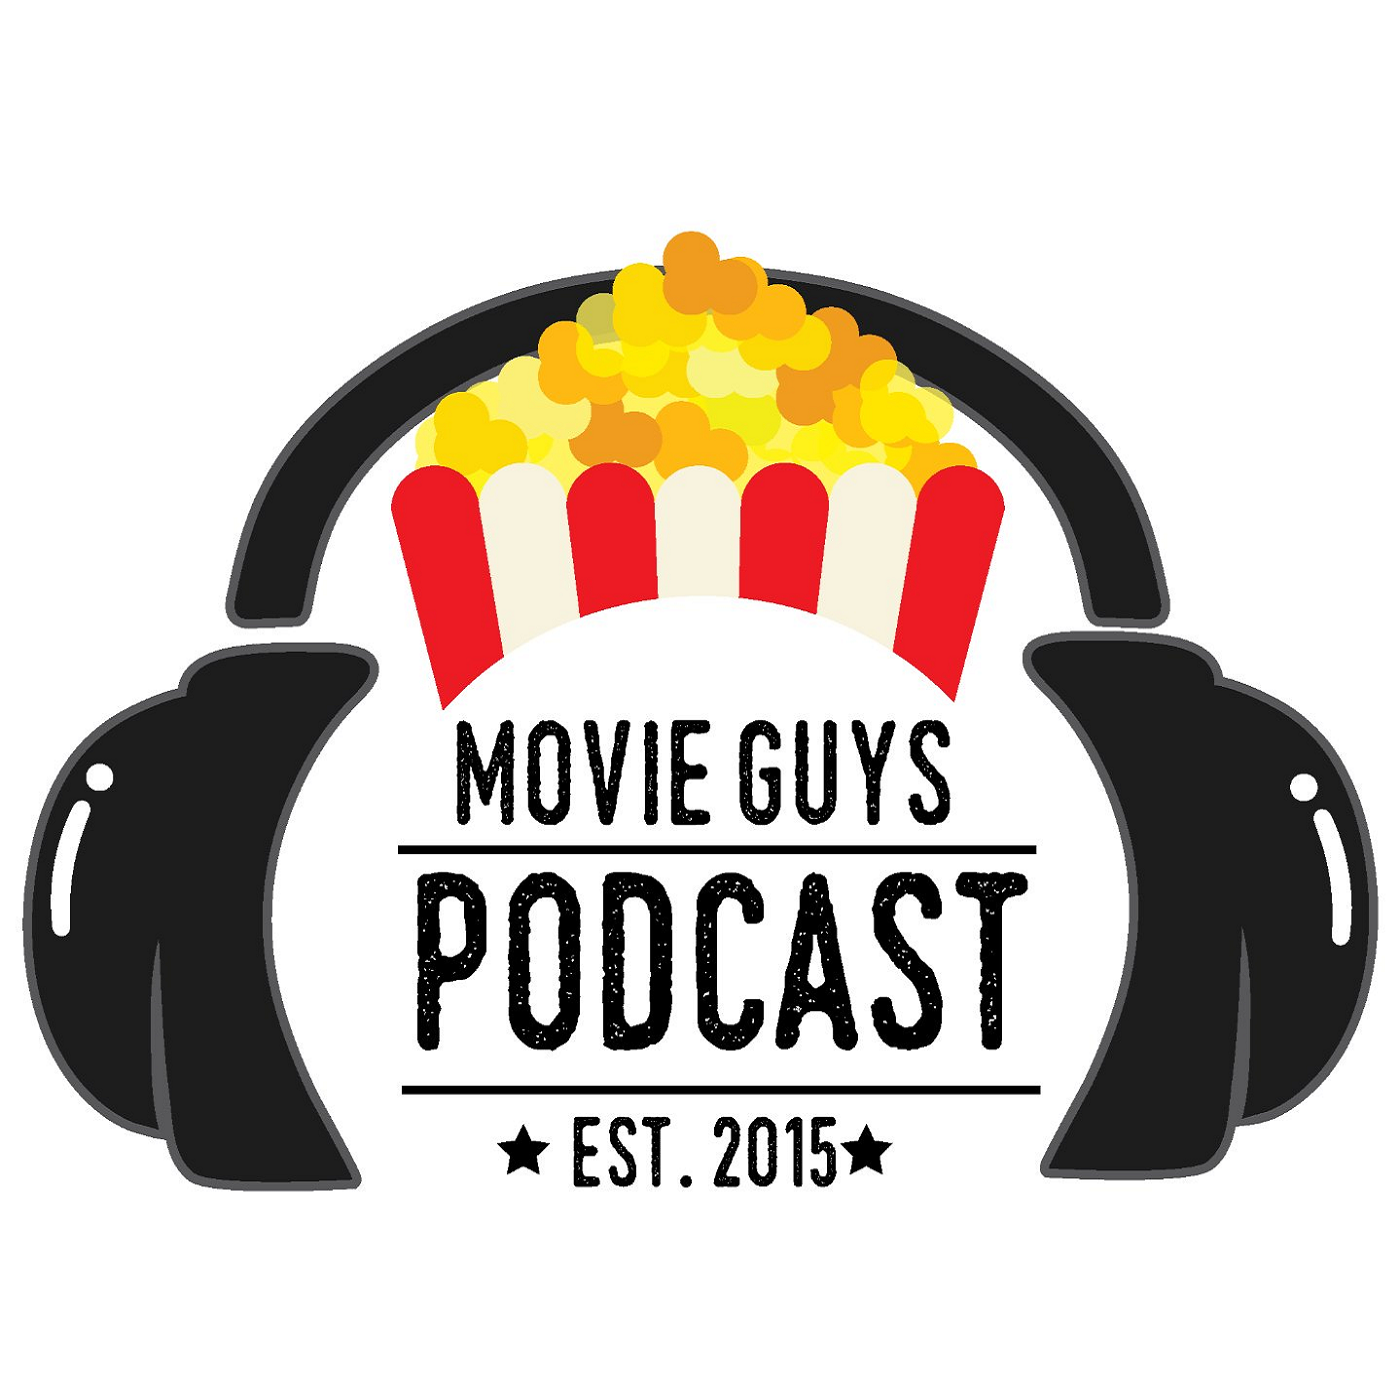 Movie Guys Podcast Movie Guys Podcast - Songbird